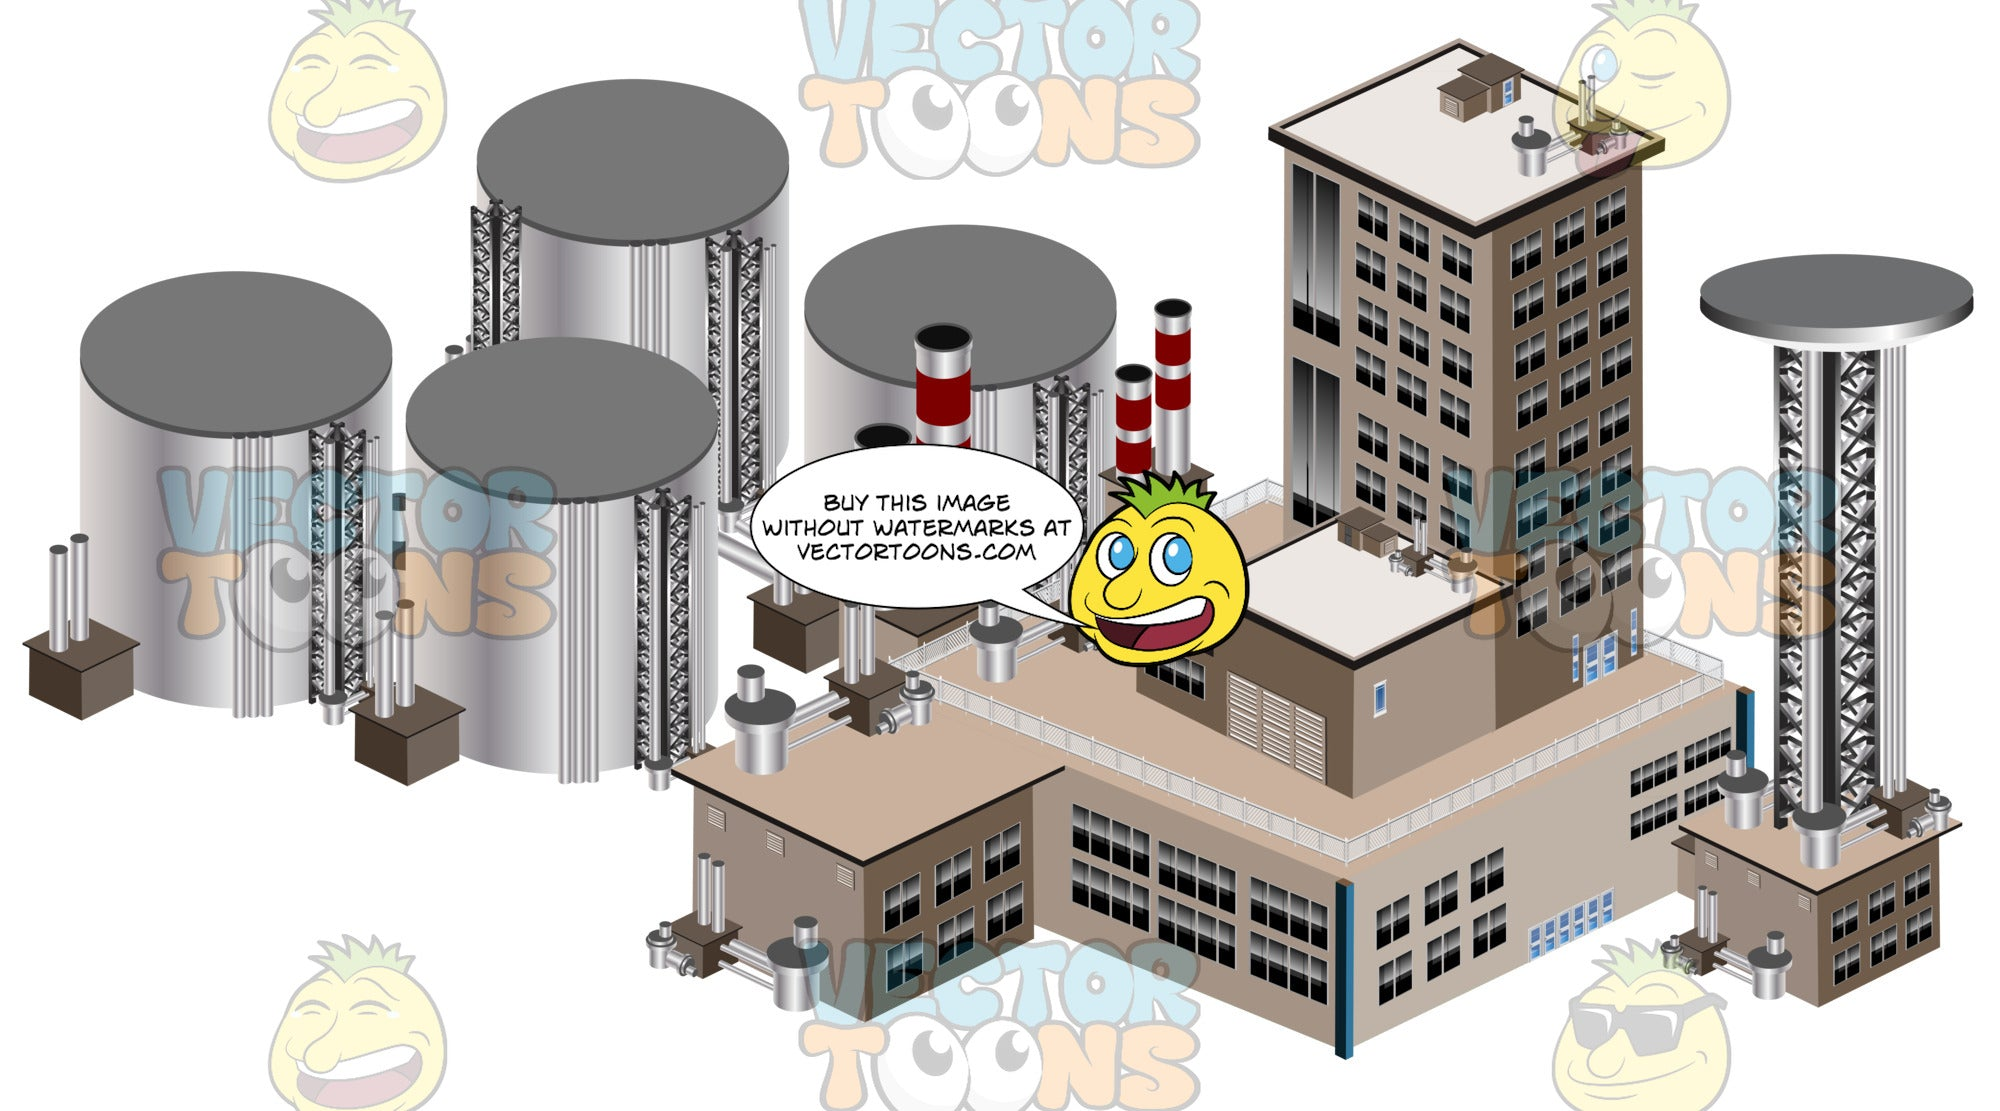 Larger Industrial Manufacturing Plant With Chemical Drums And Larger Tower Buildings With Smokestacks